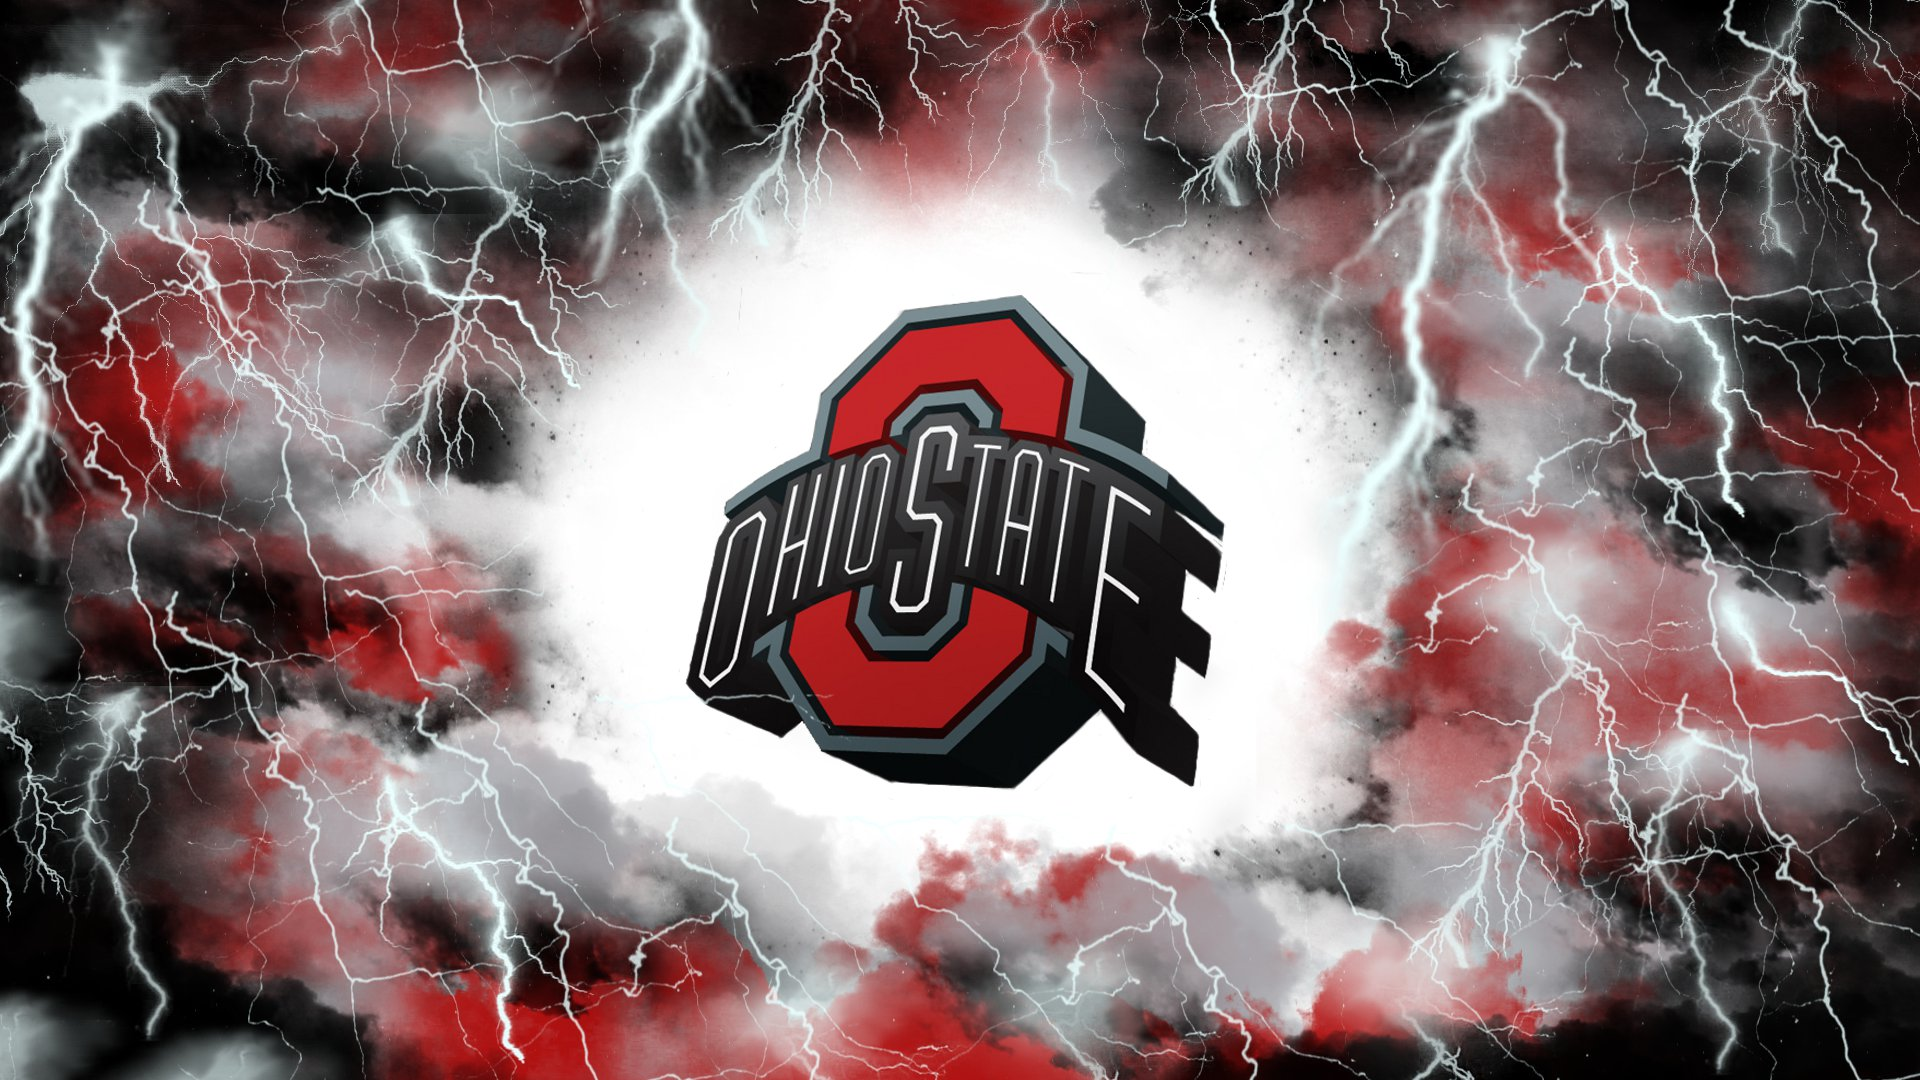 OHIO STATE BUCKEYES college football 21 wallpaper background 1920x1080